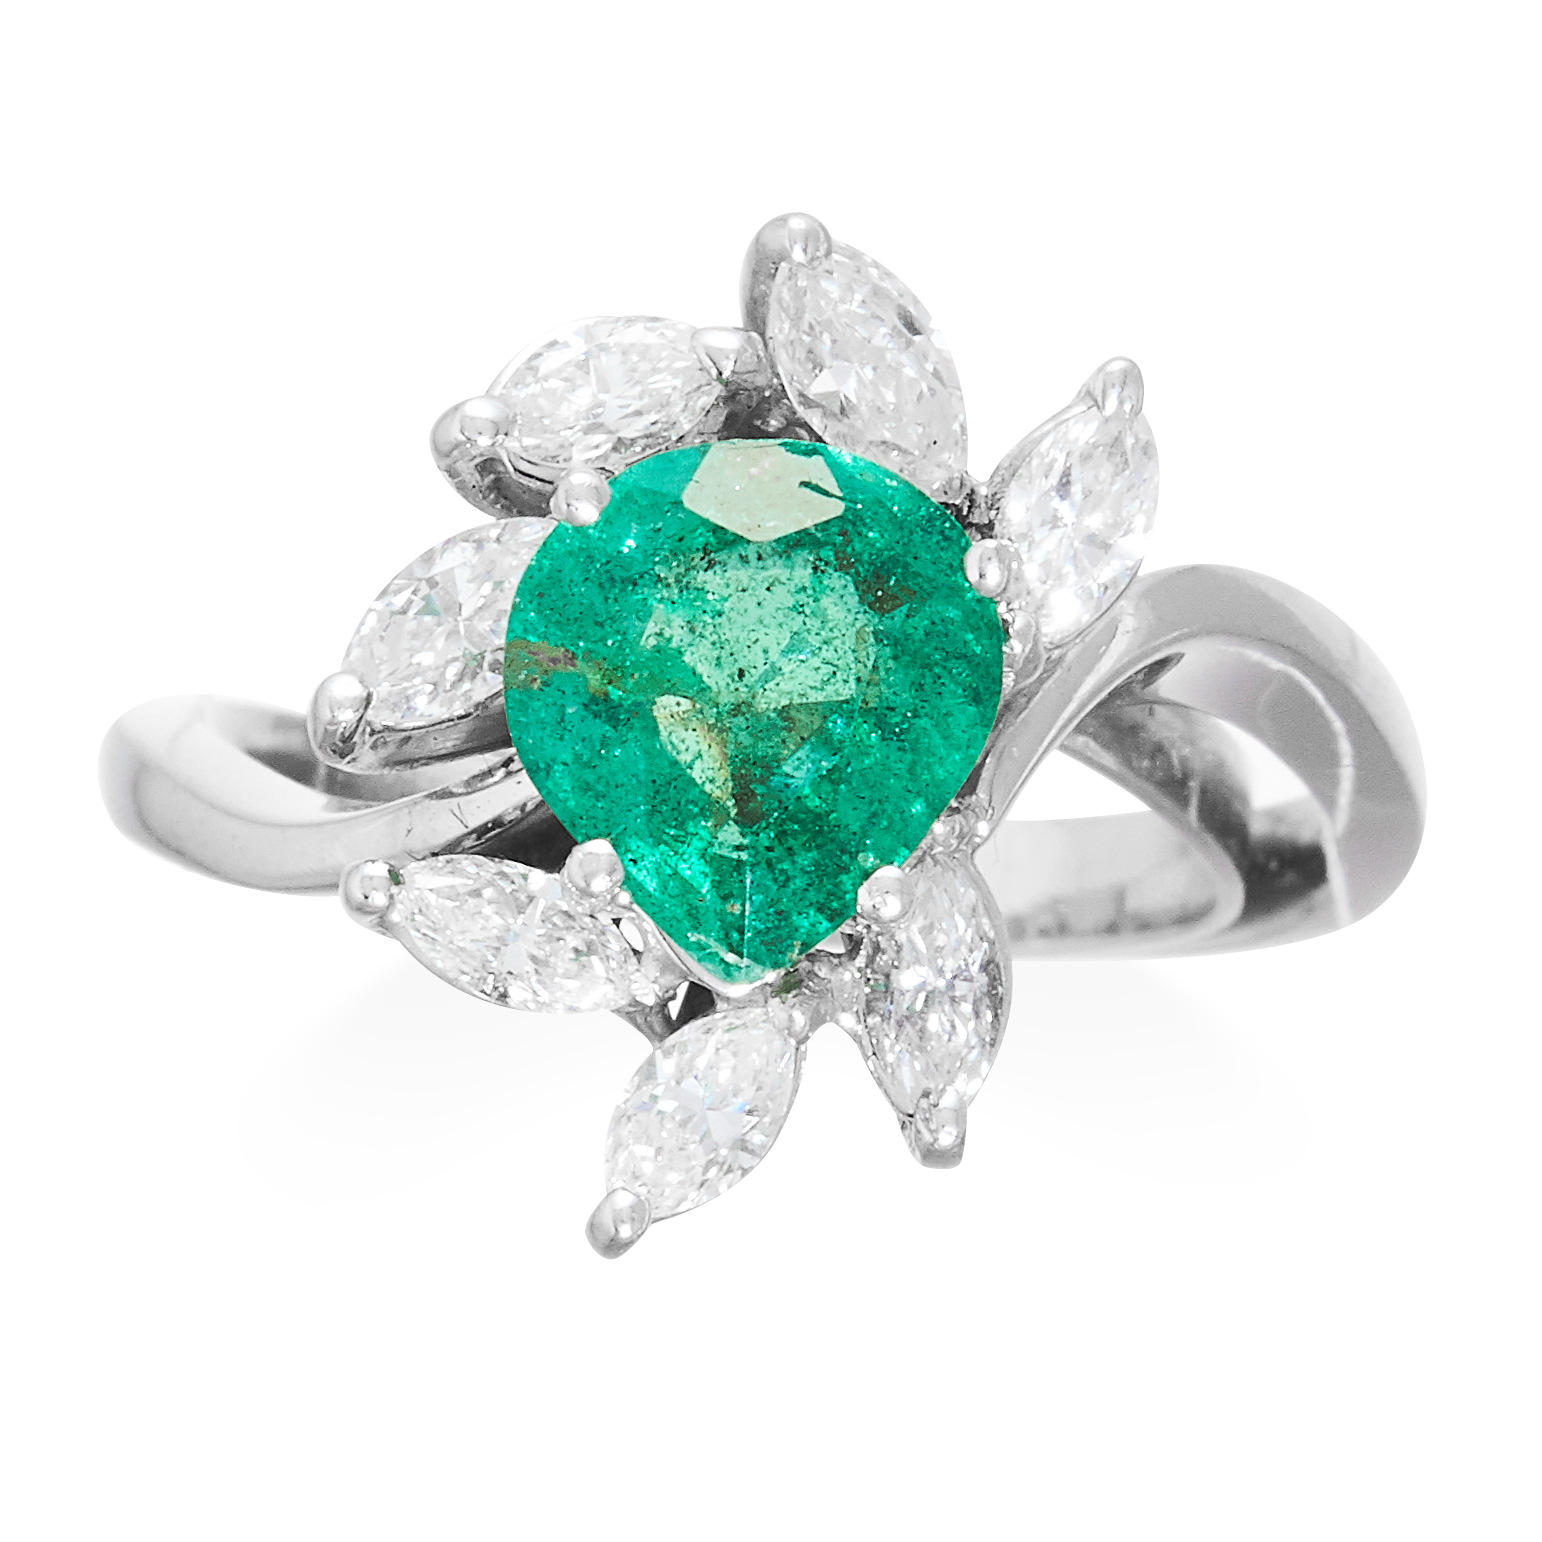 Los 27 - AN EMERALD AND DIAMOND RING in platinum or white gold set with a pear cut emerald of 1.35 carats